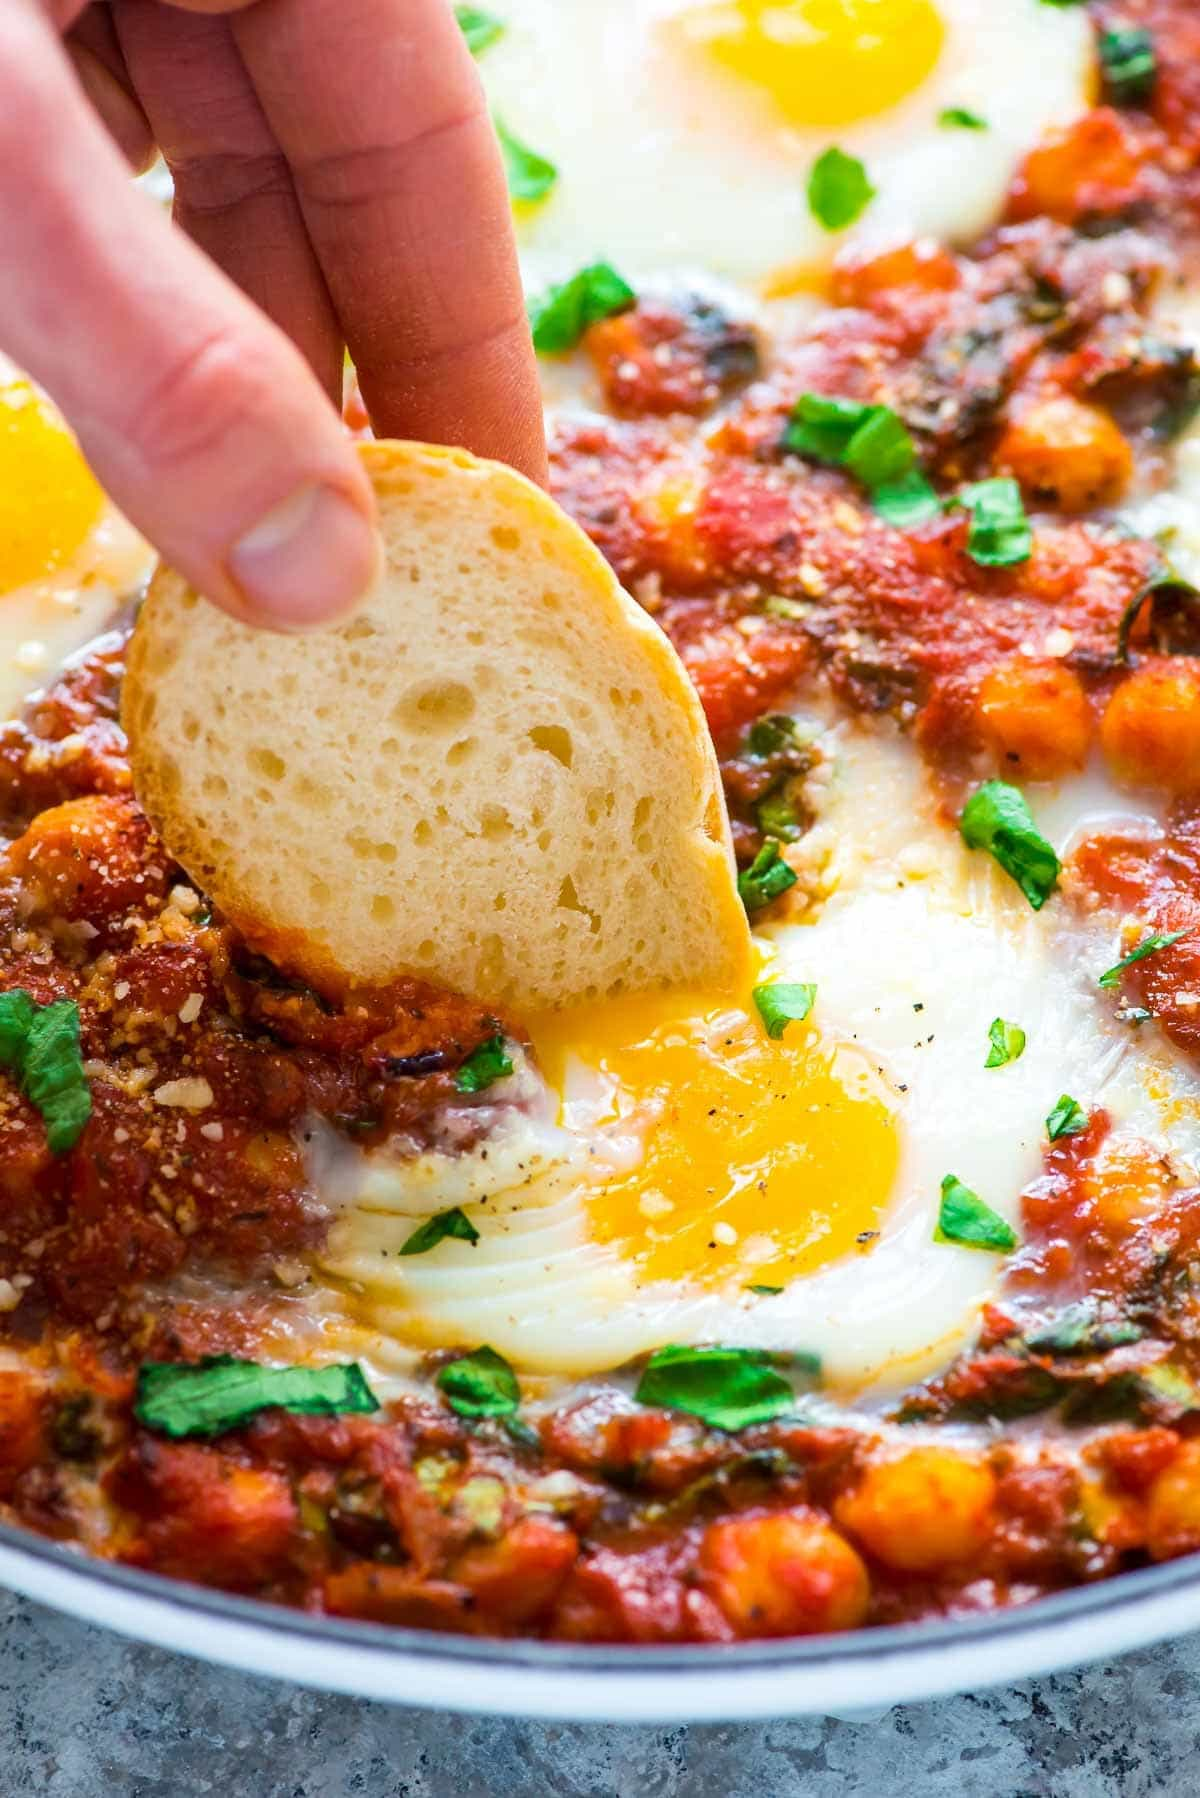 Italian Baked Eggs in Purgatory – Eggs simmered in a garlic tomato sauce with chickpeas, spinach, basil, and Parmesan. Easy, healthy, budget-friendly, and DELICIOUS! Recipe at wellplated.com | @wellplated